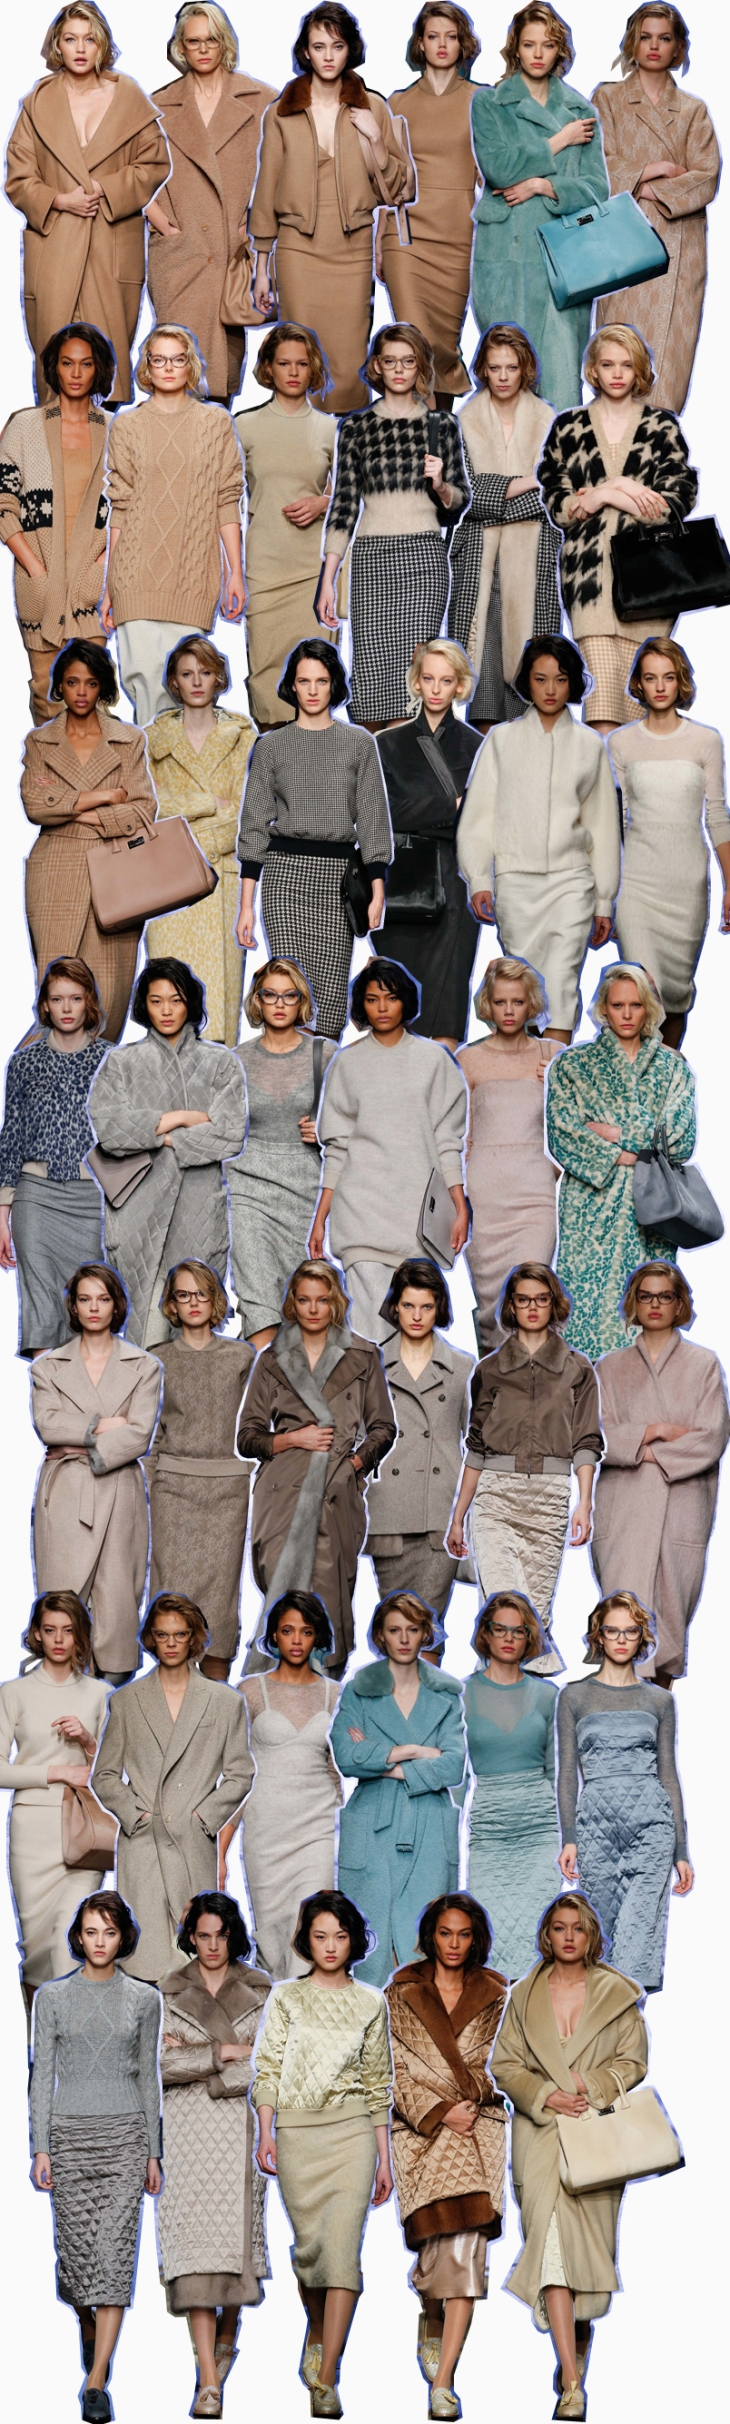 Max Mara Fall 2015 Fashion Show